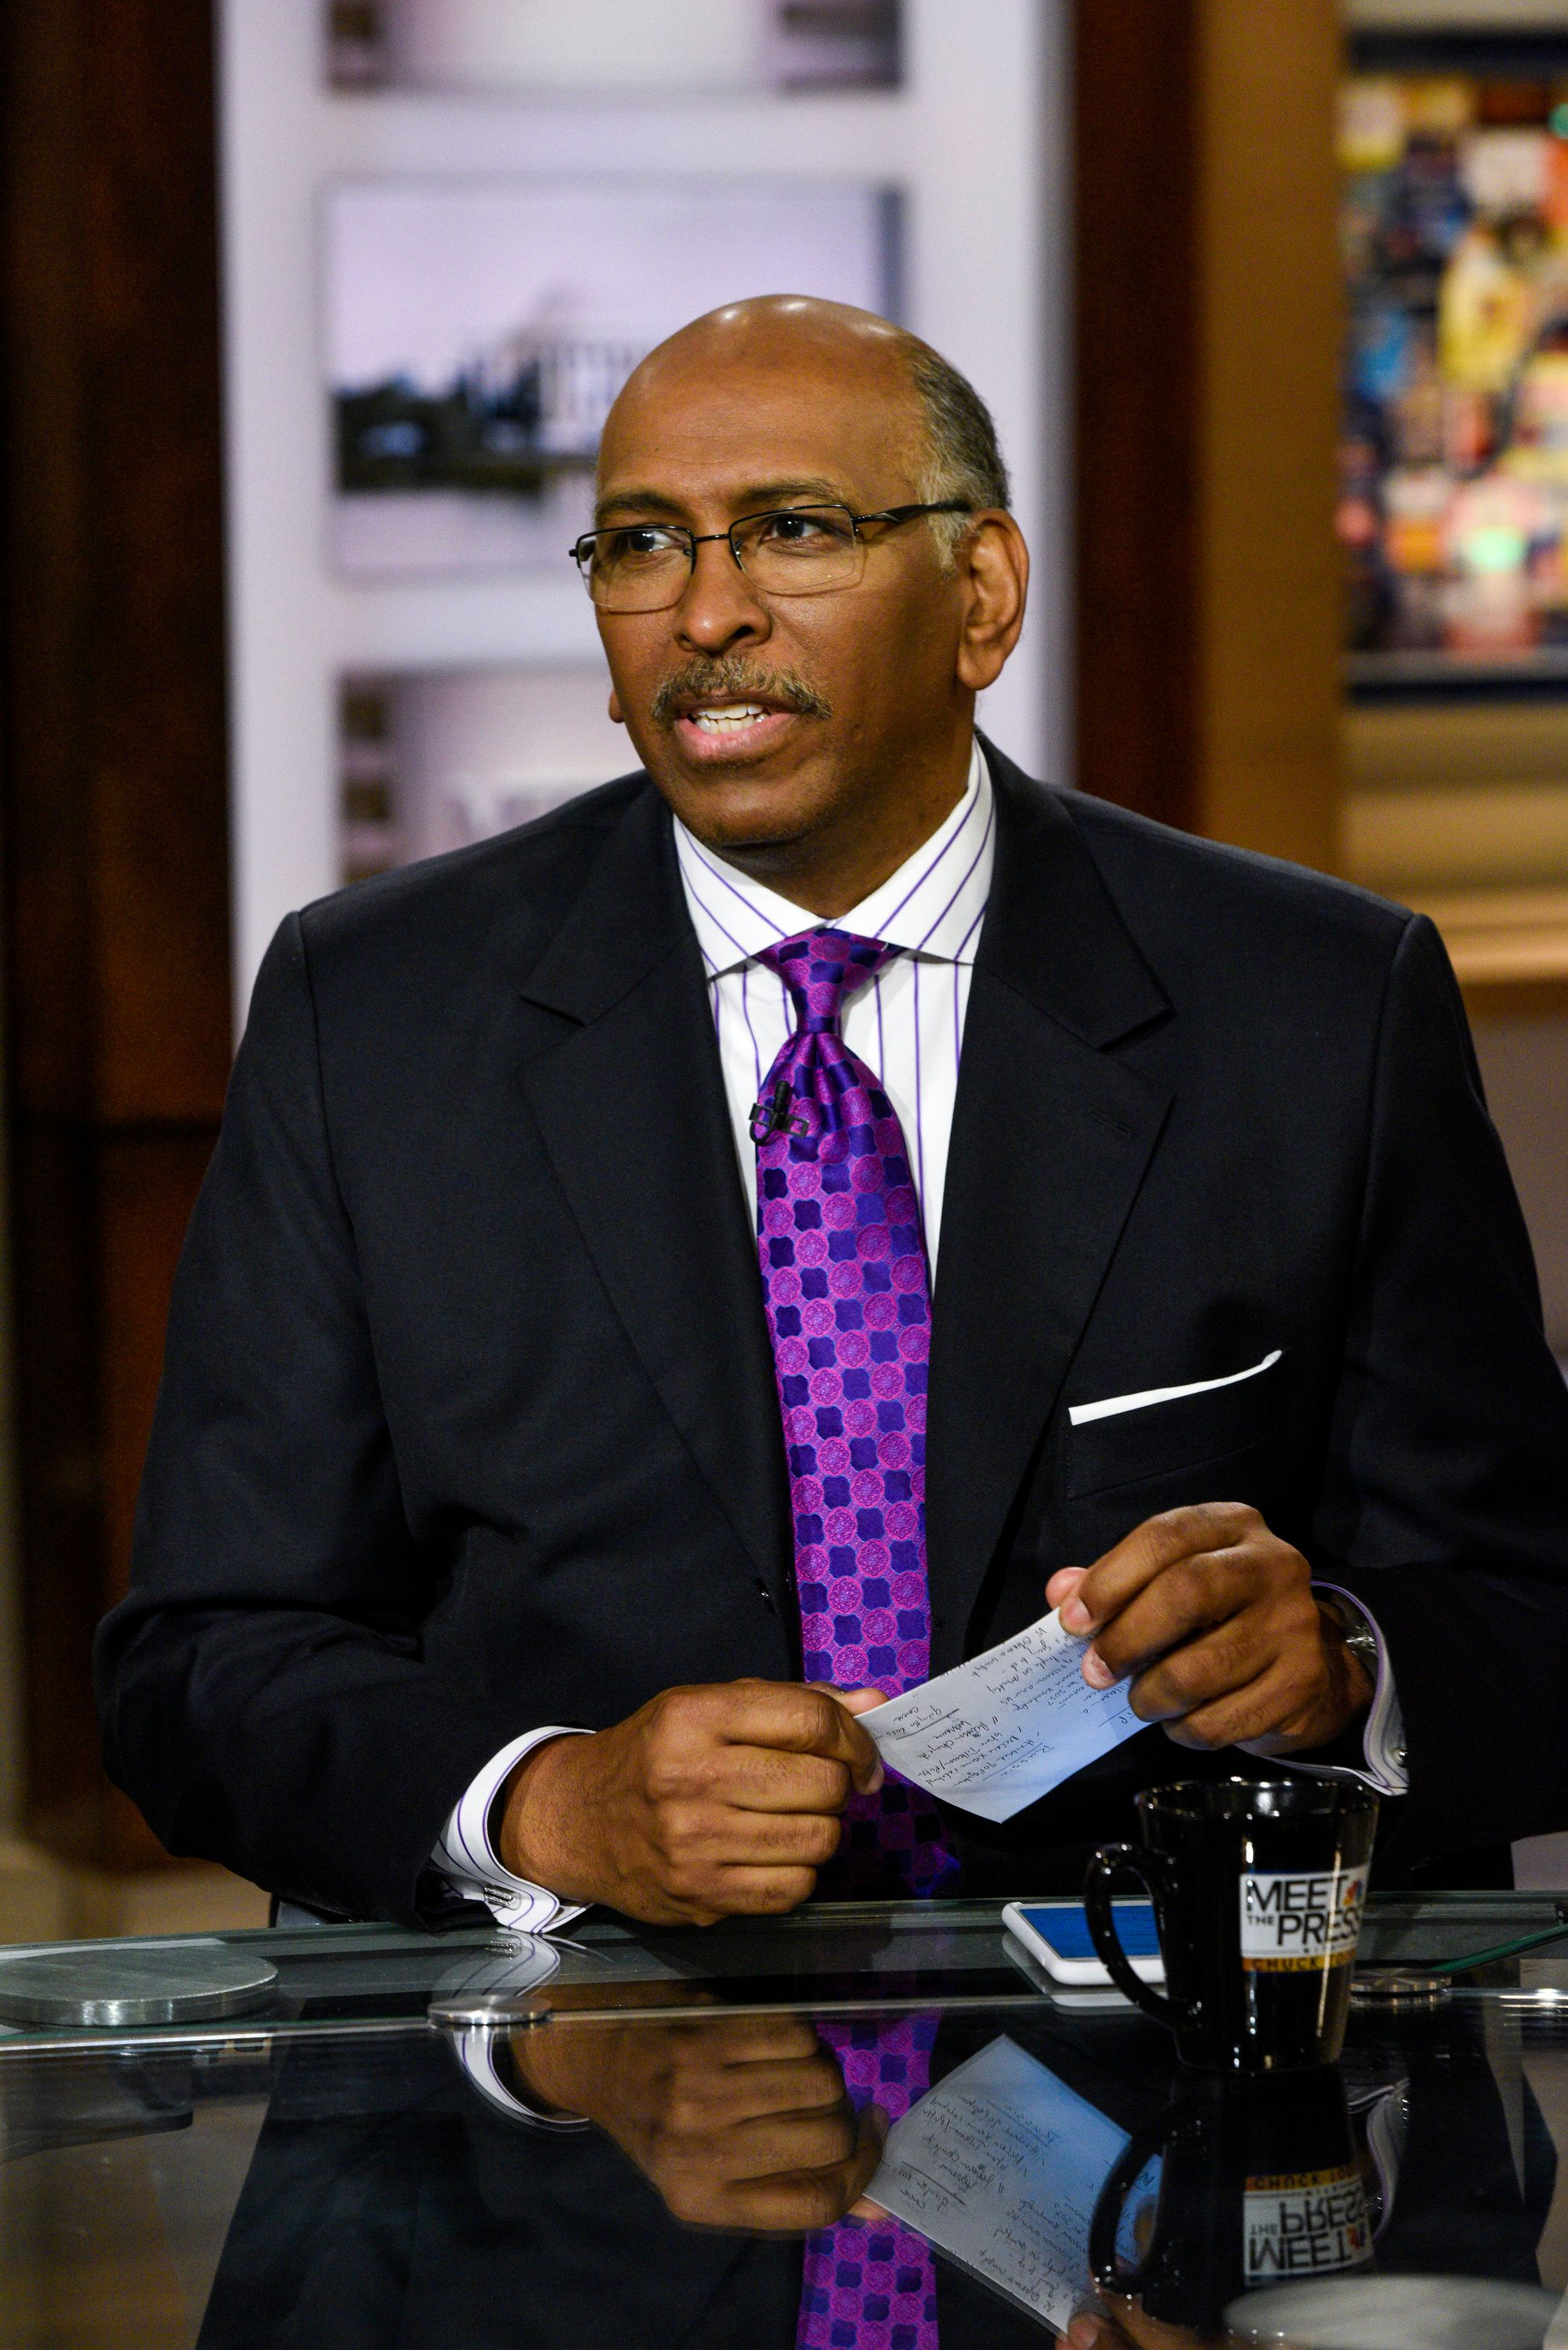 MEET THE PRESS -- Pictured: (l-r)  Michael Steele, Former Chair, Republican National Committee, appears on 'Meet the Press' in Washington, D.C., Sunday Dec. 11, 2016.  (Photo by: William B. Plowman/NBC/NBC NewsWire via Getty Images)